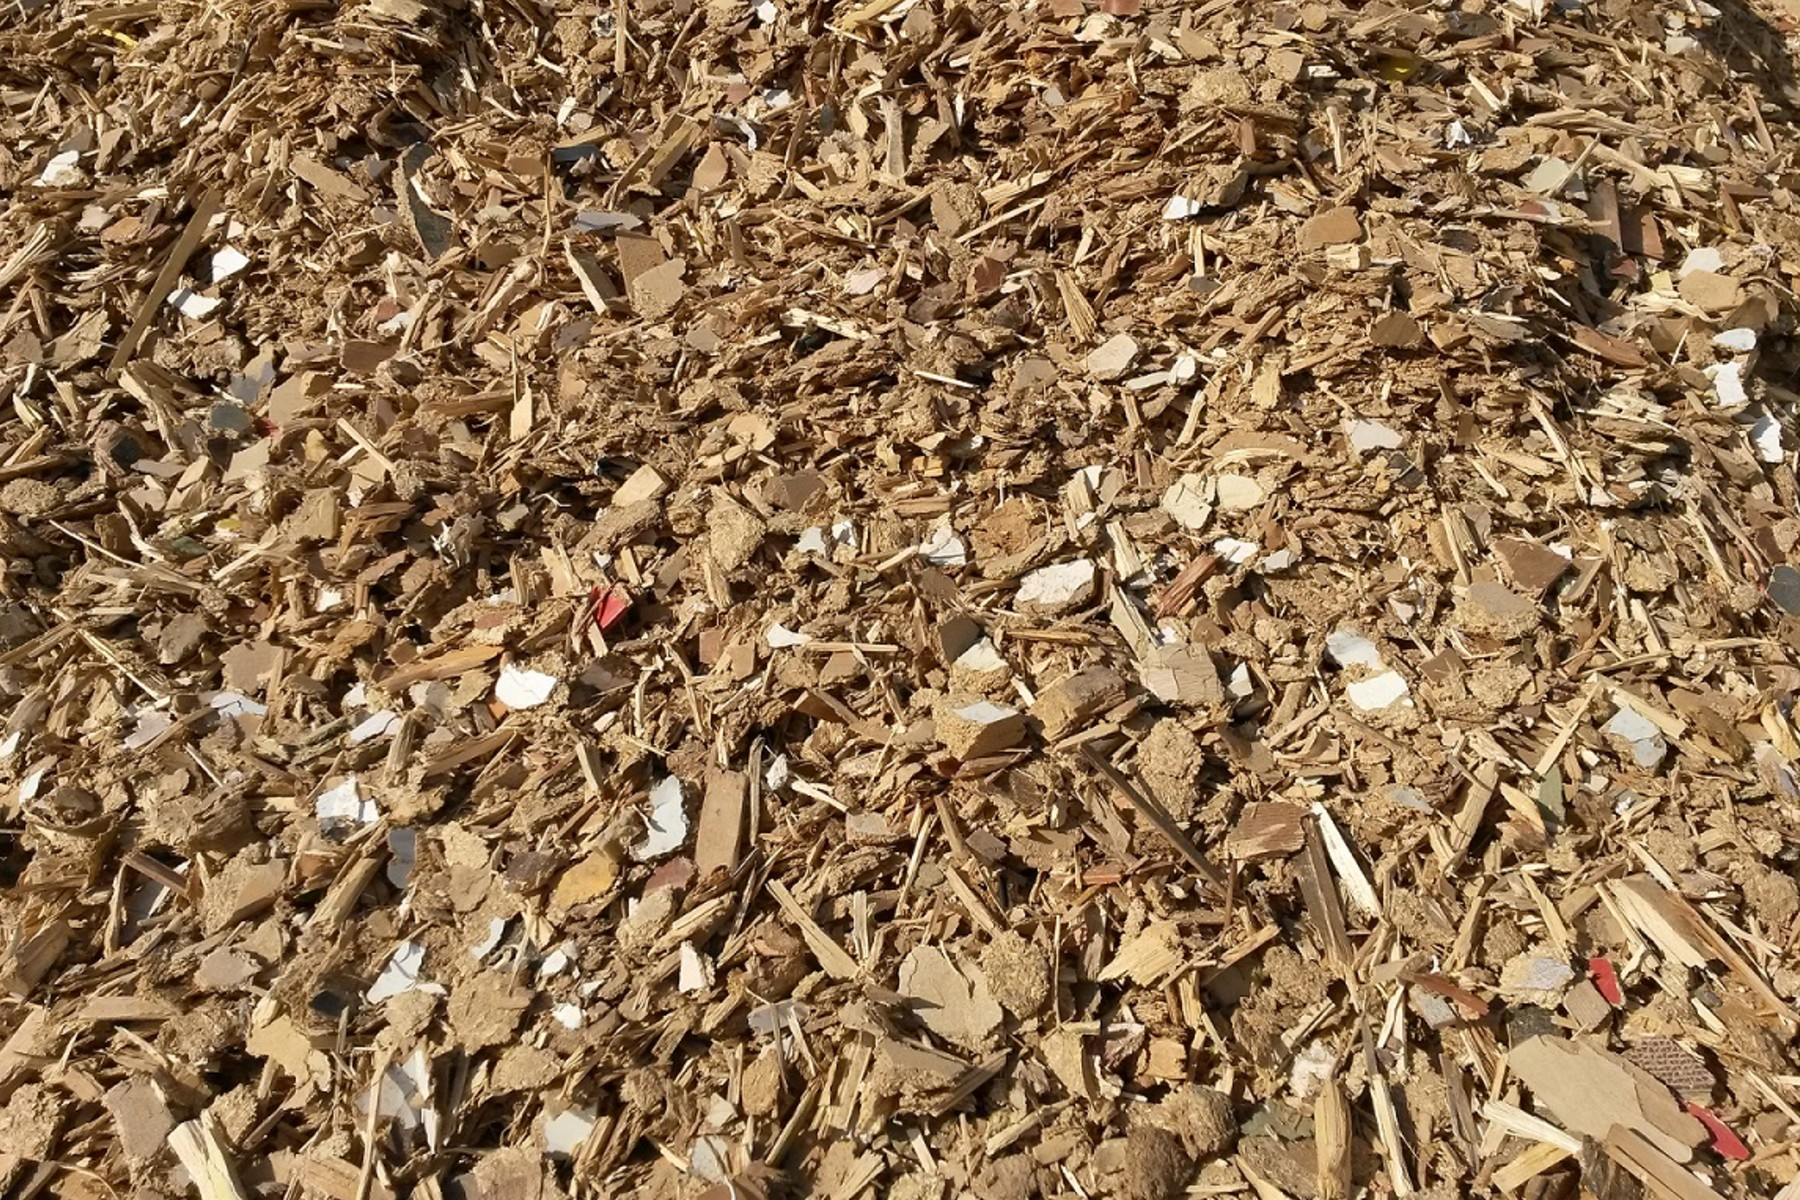 UNTHA UK set to exhibit at Wood Recyclers' Association event